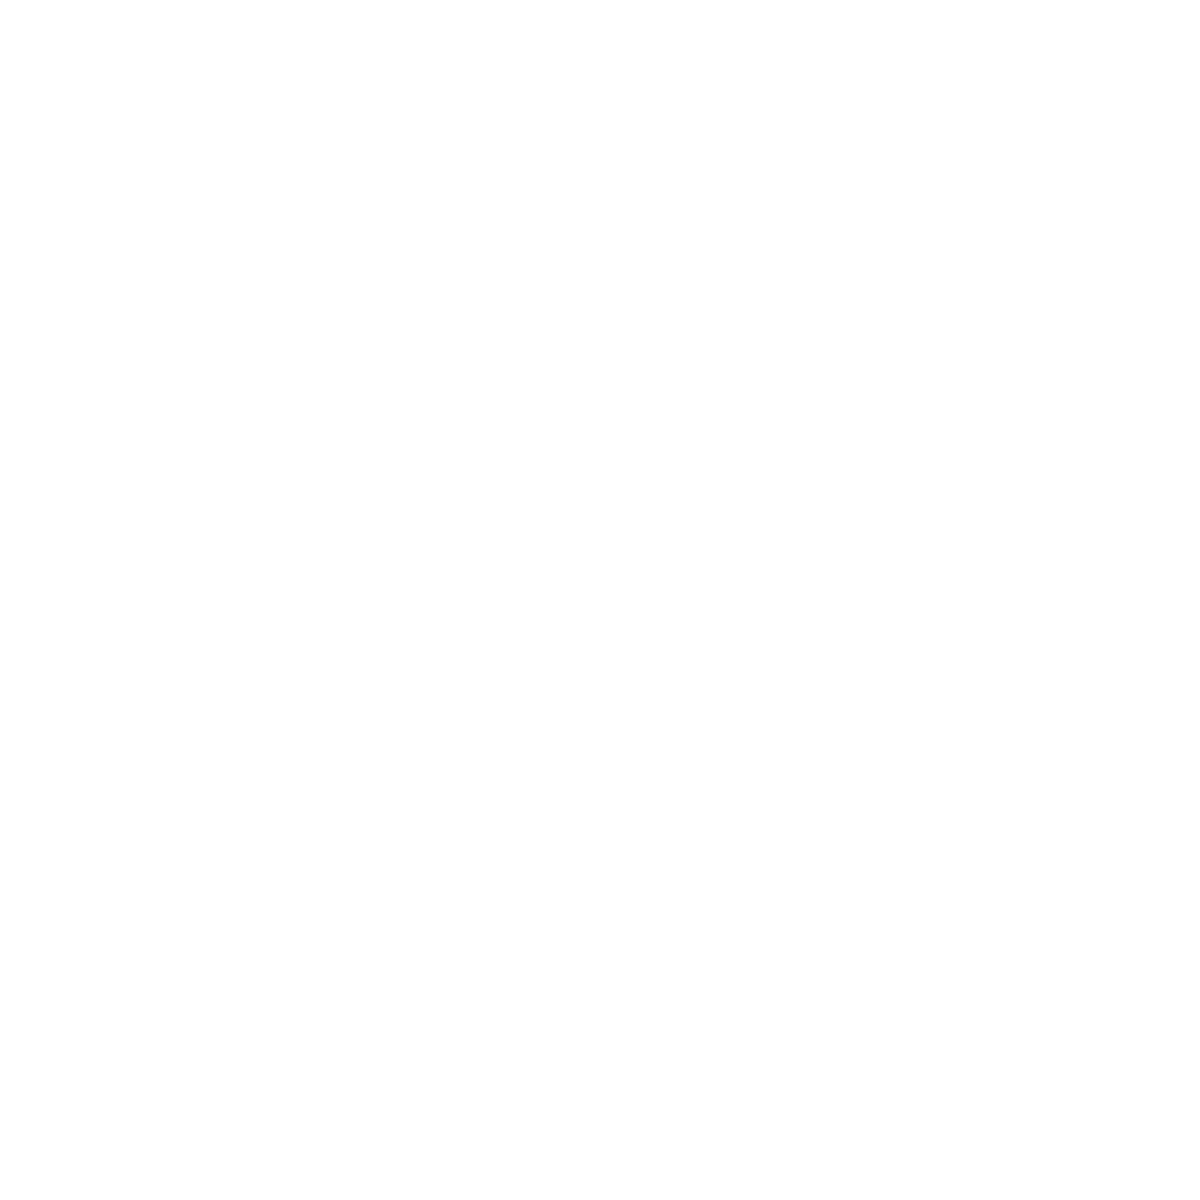 dollar sign with arrow